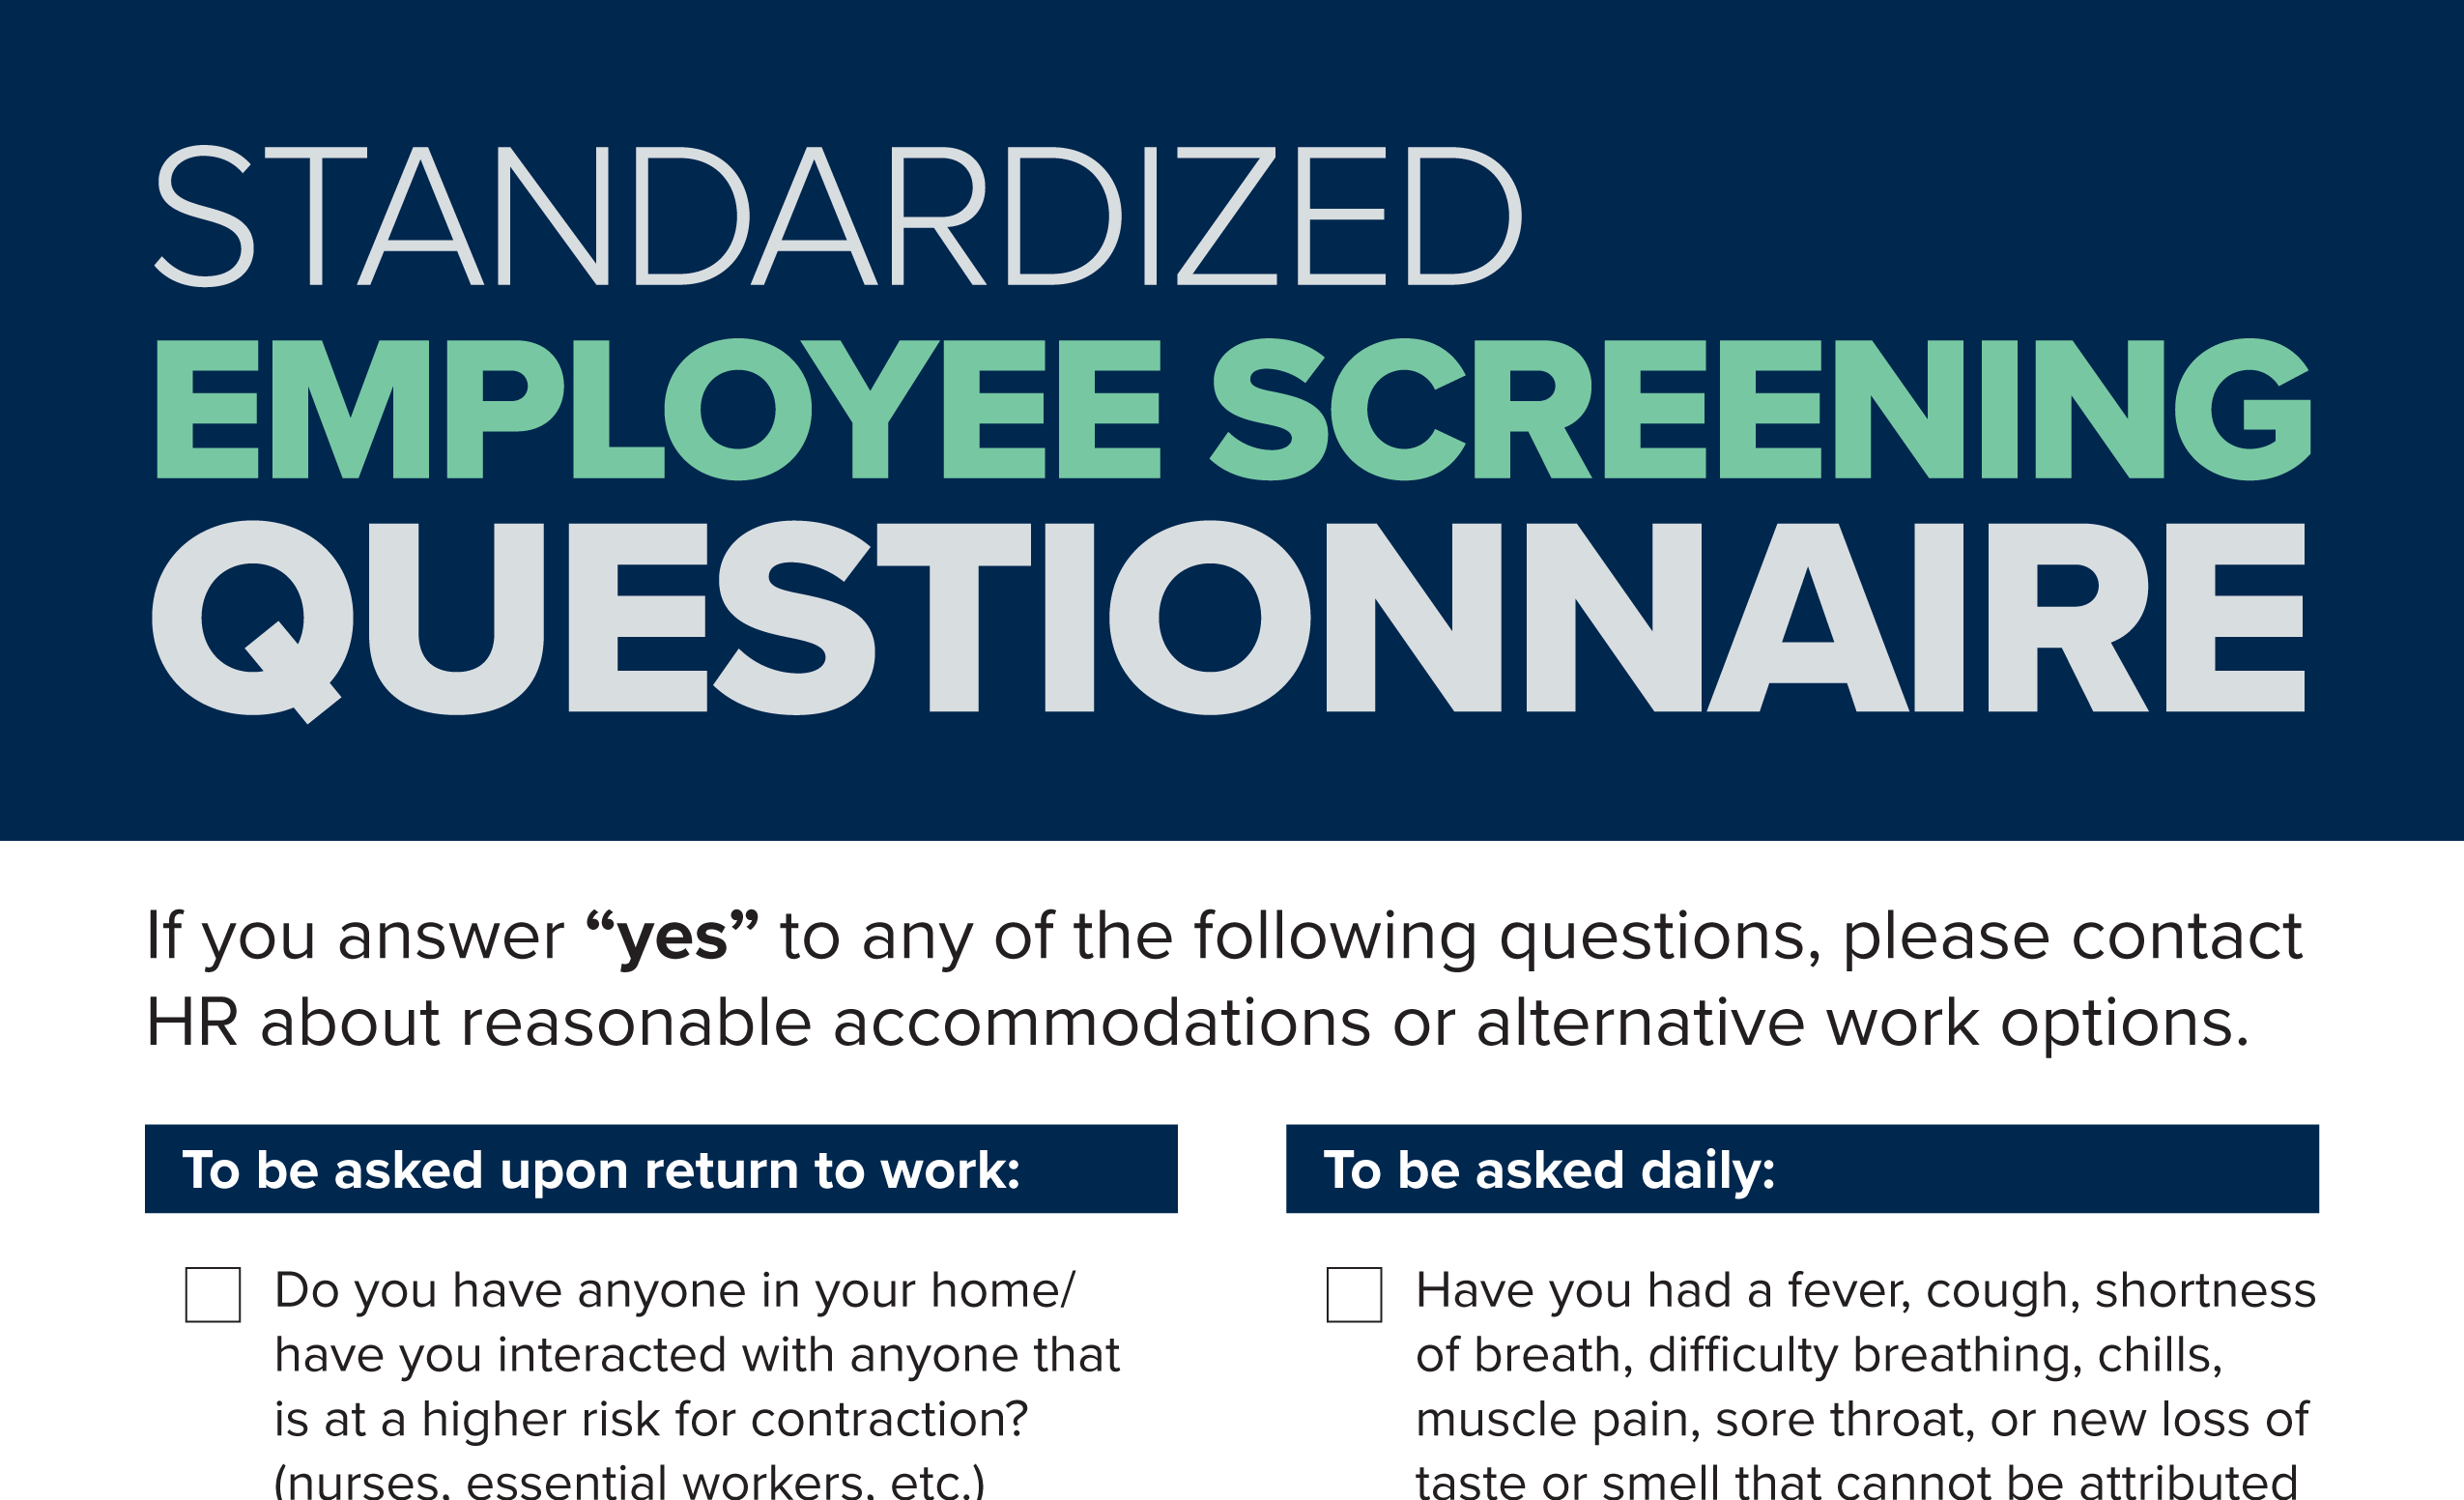 Standardized Employee Screening Questionnaire